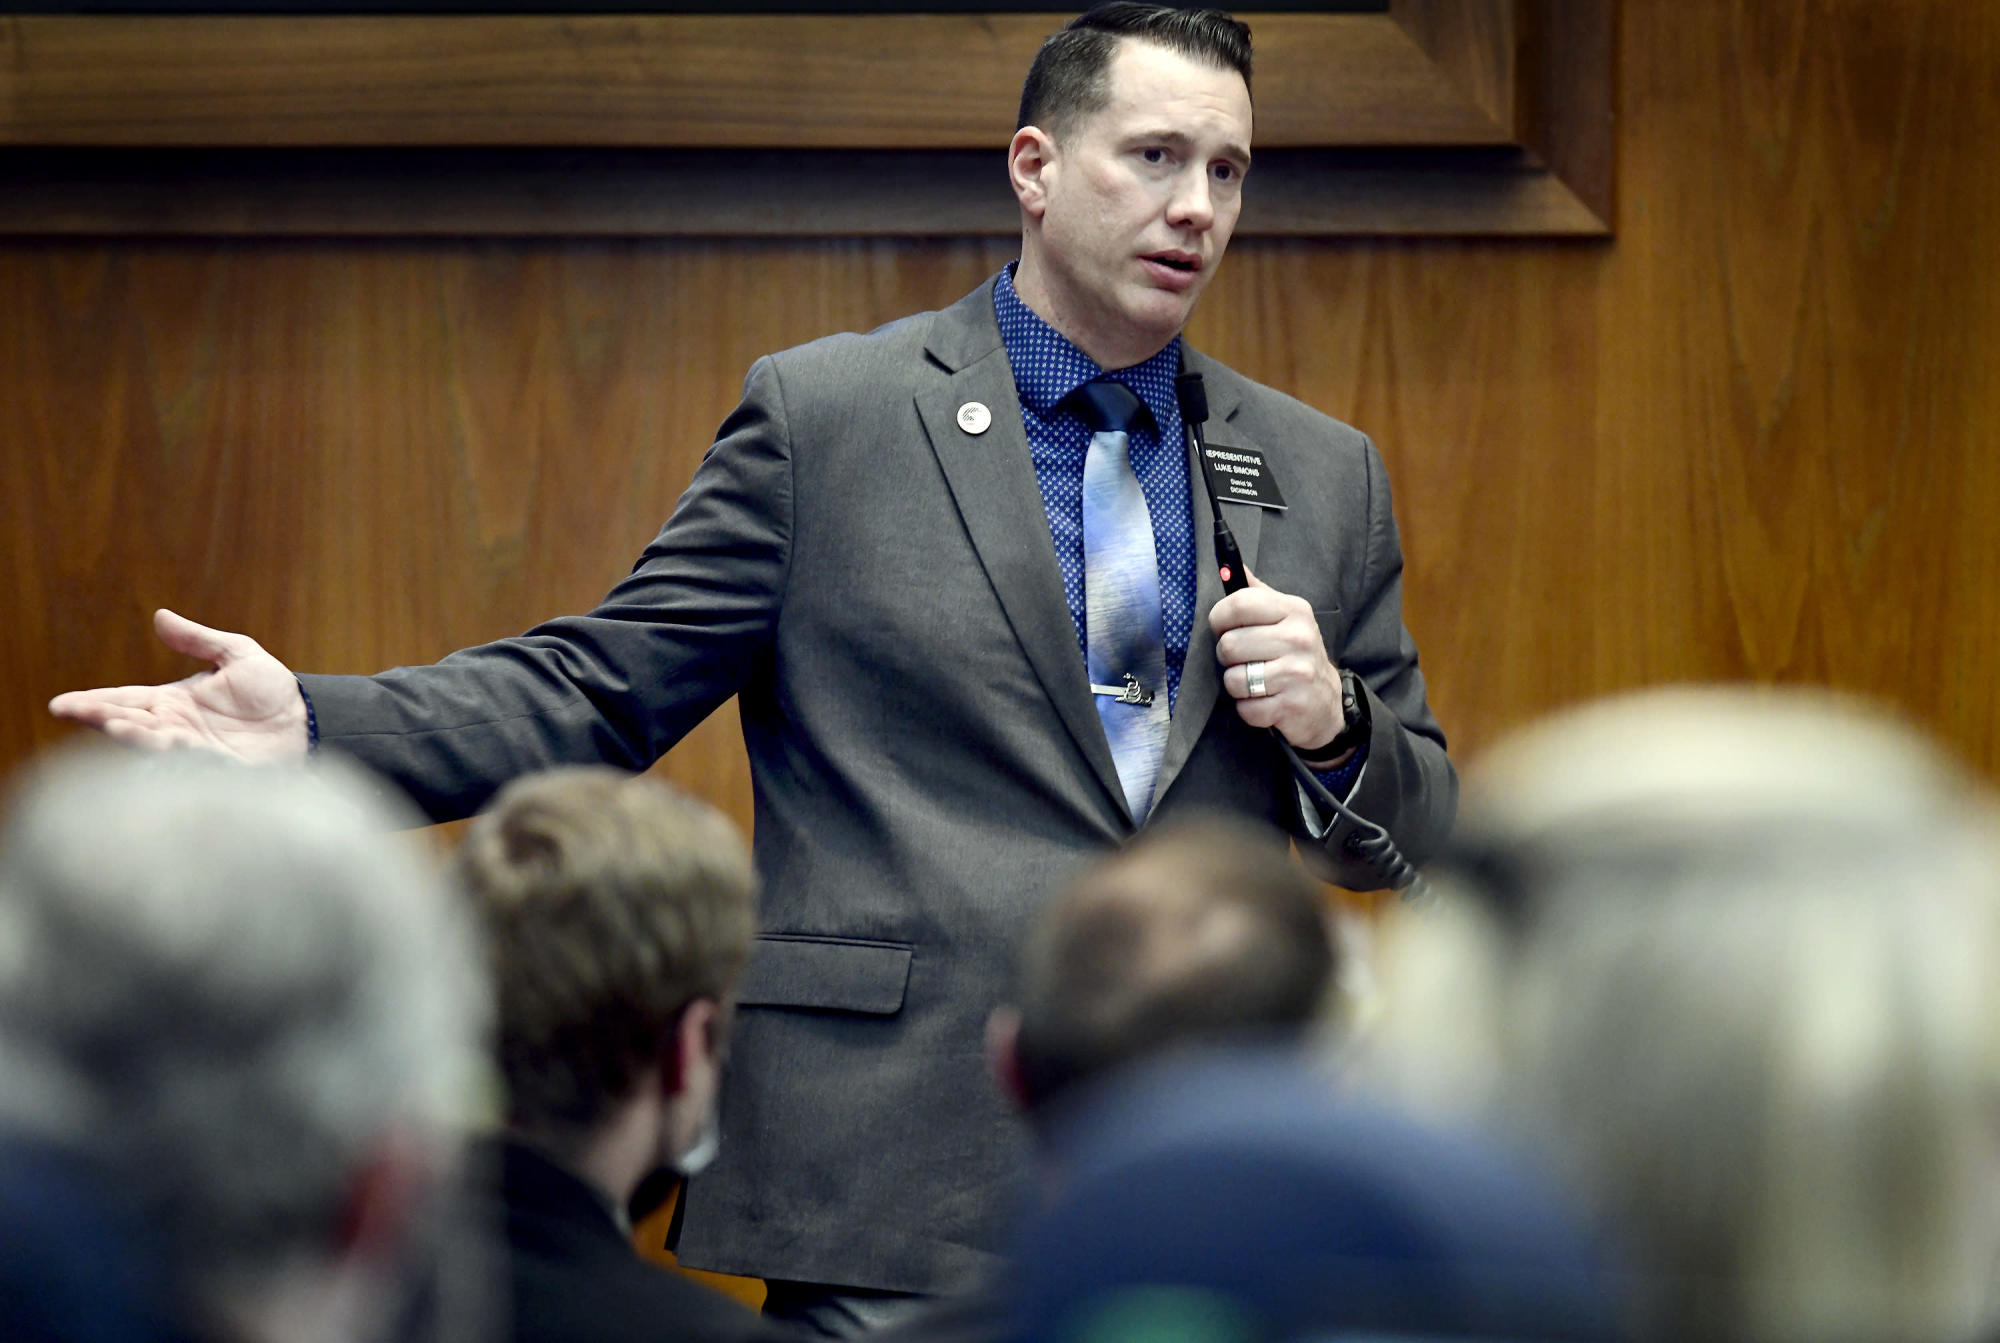 North Dakota House expels lawmaker accused of misconduct